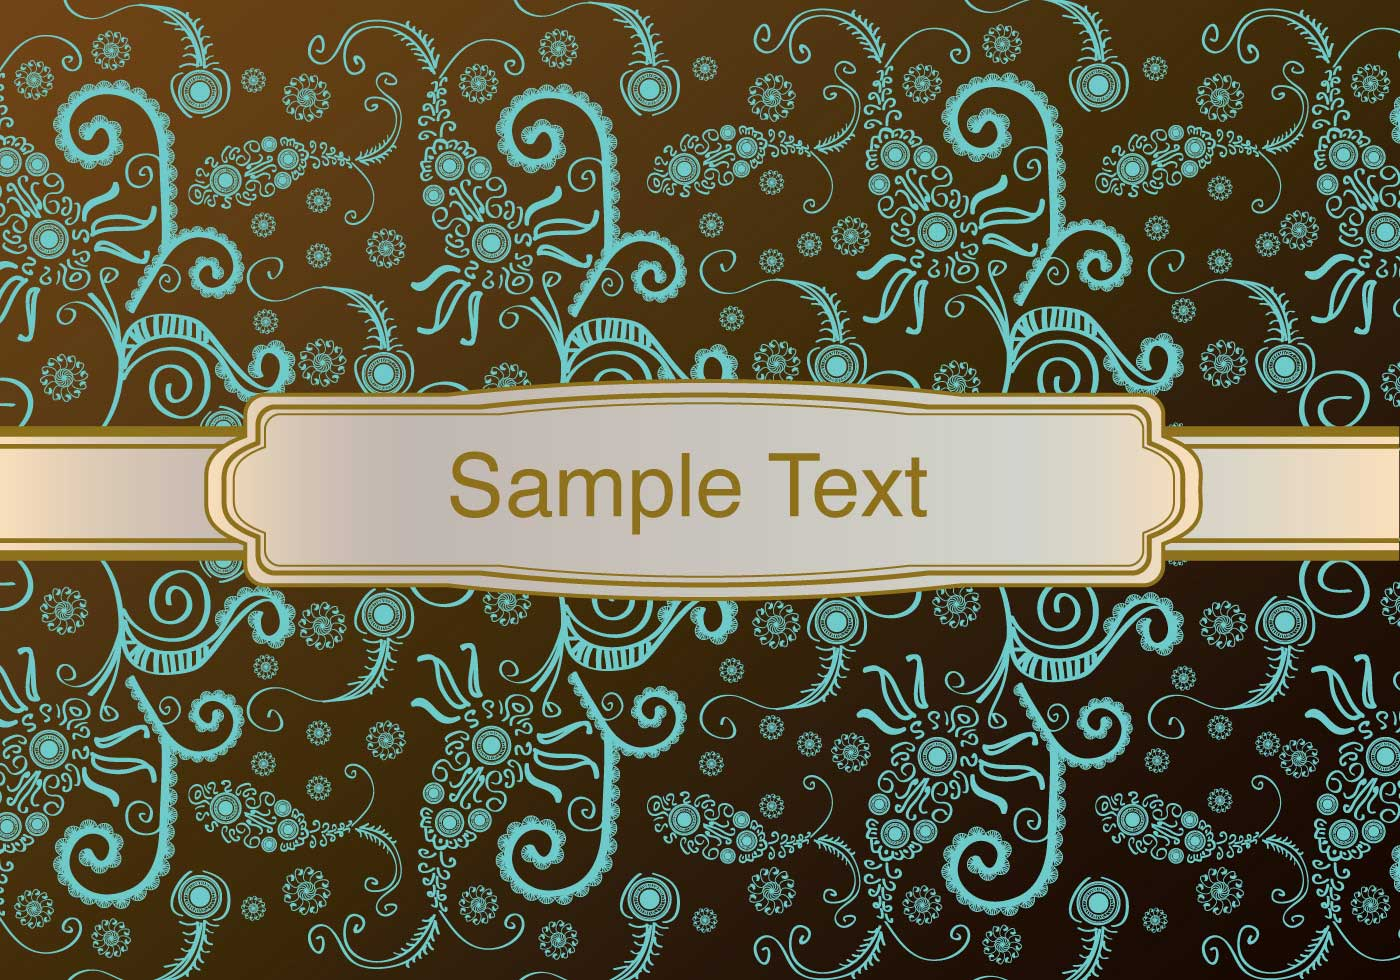 Vintage Background With Ornament